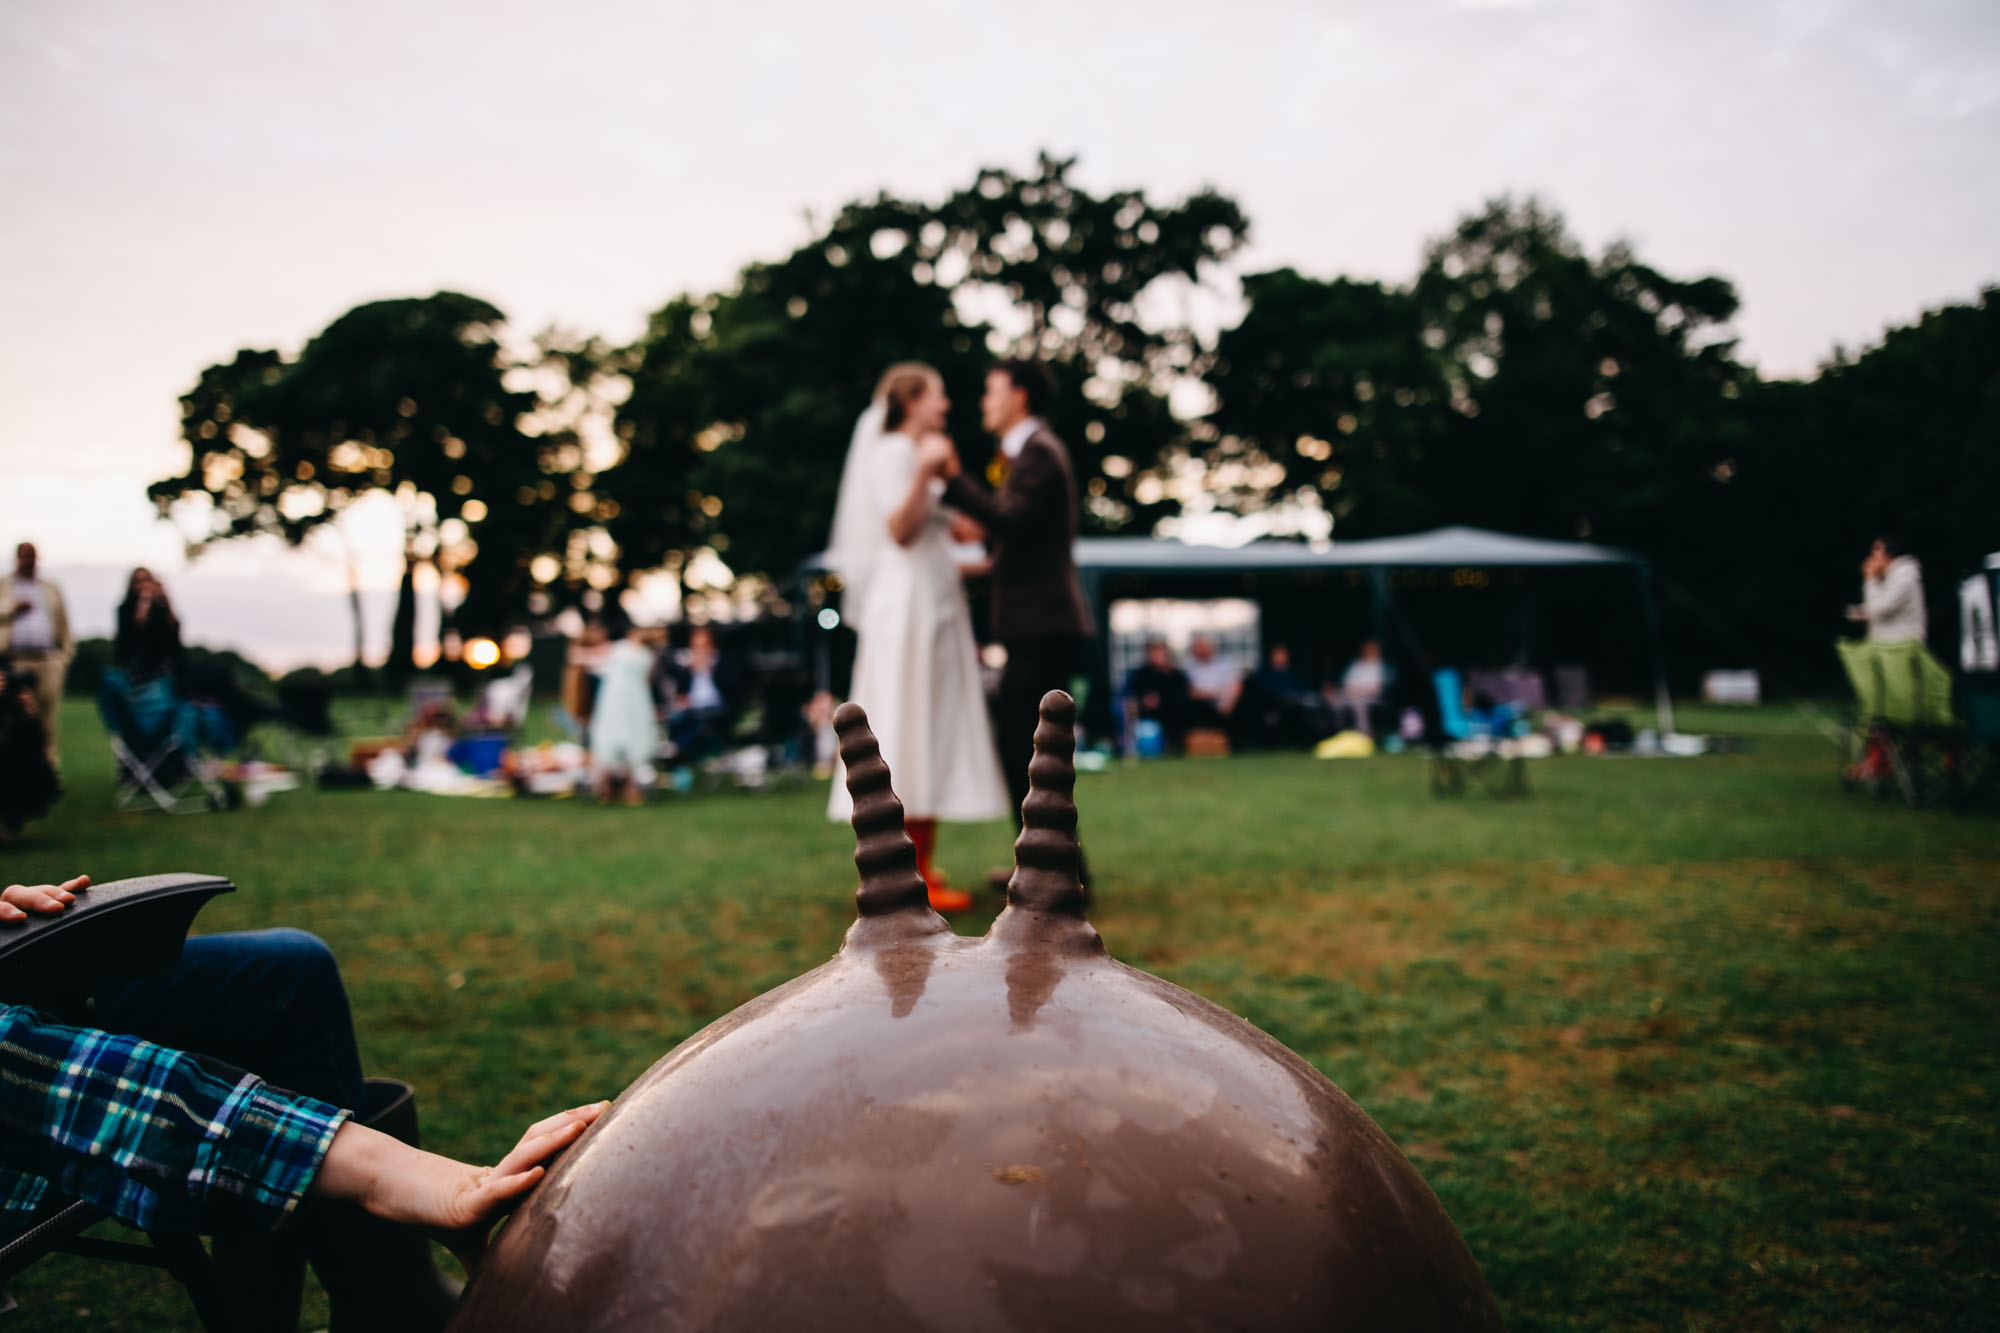 DIY-wedding-outdoor-wedding-venue-kent-82